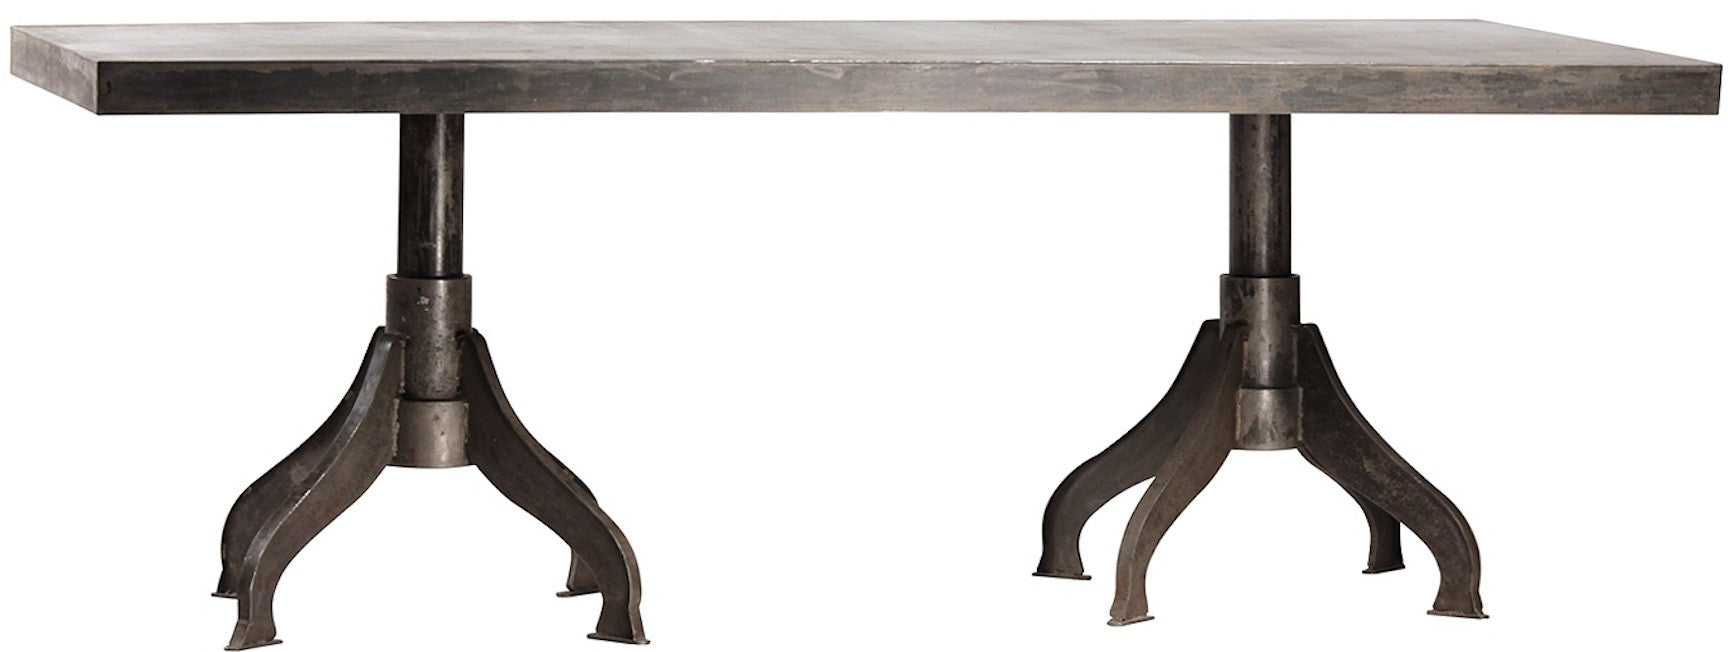 Industrial Metal Double Pedestal Dining Table